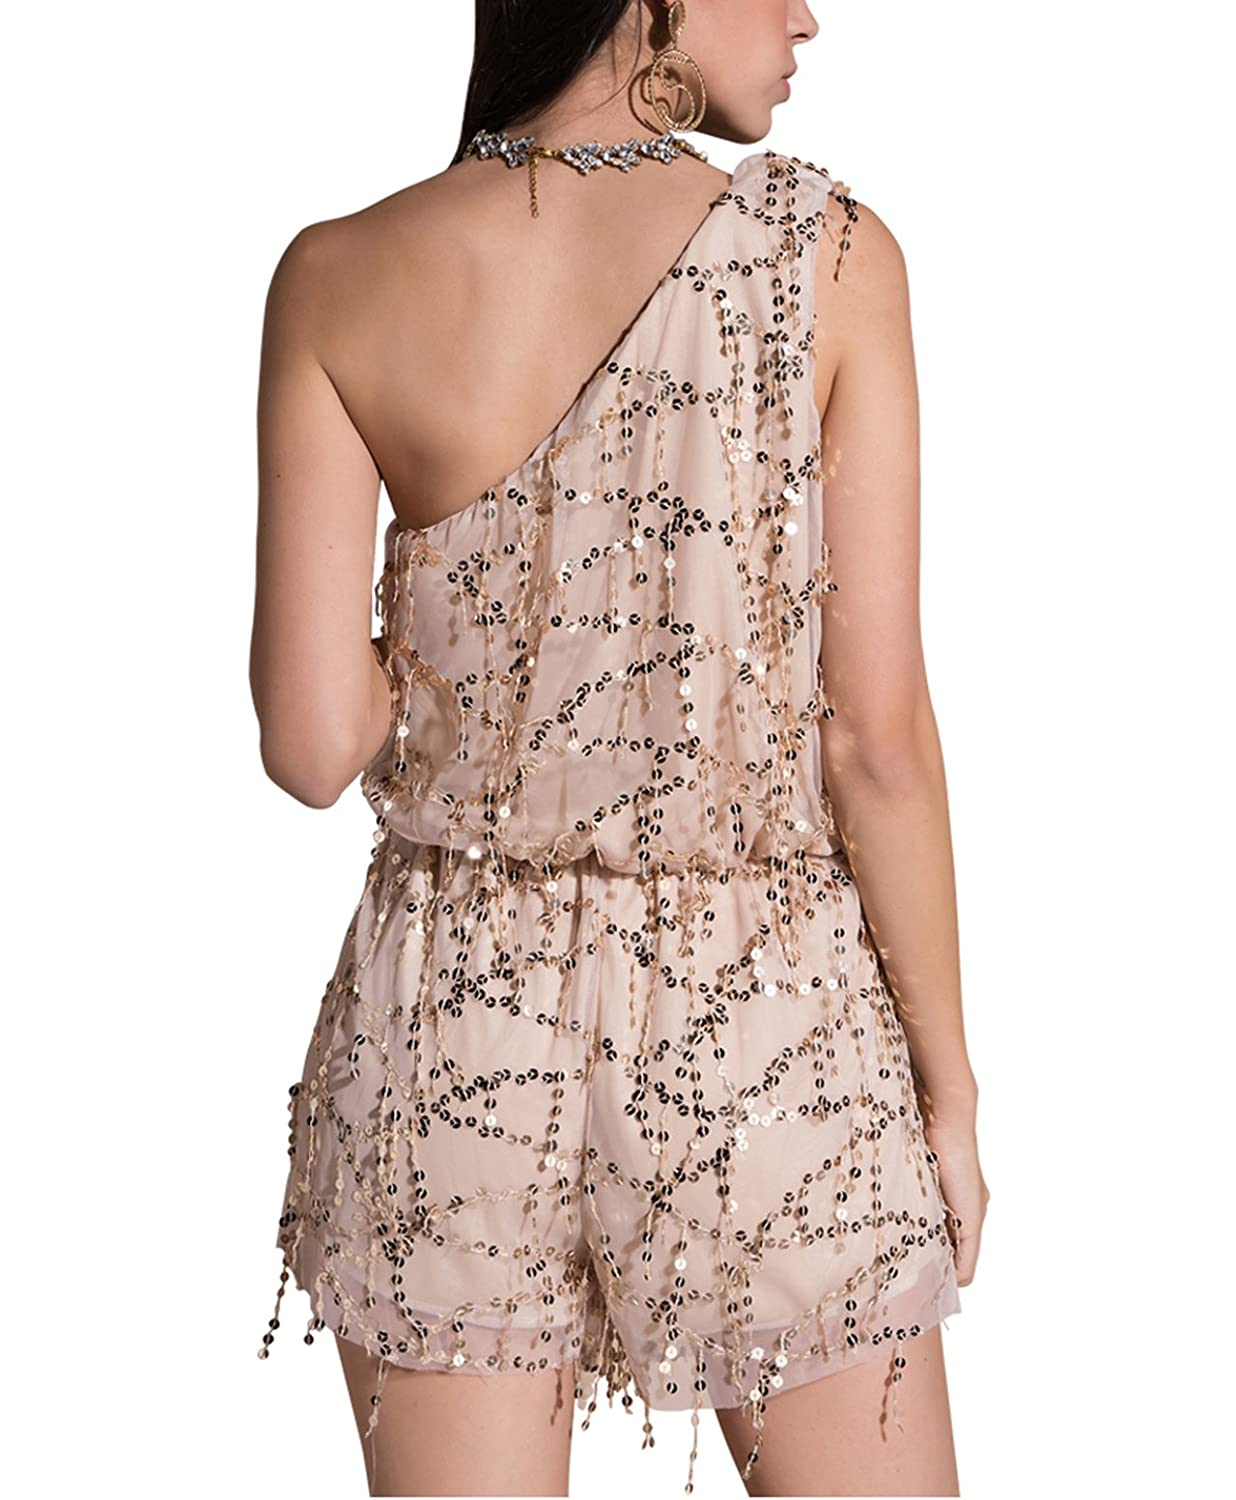 7d536b1d733 Amazon.com  CHIC DIARY Women Sexy Sequin Romper Plunge Neck Long Sleeve  Tassel Playsuit  Clothing